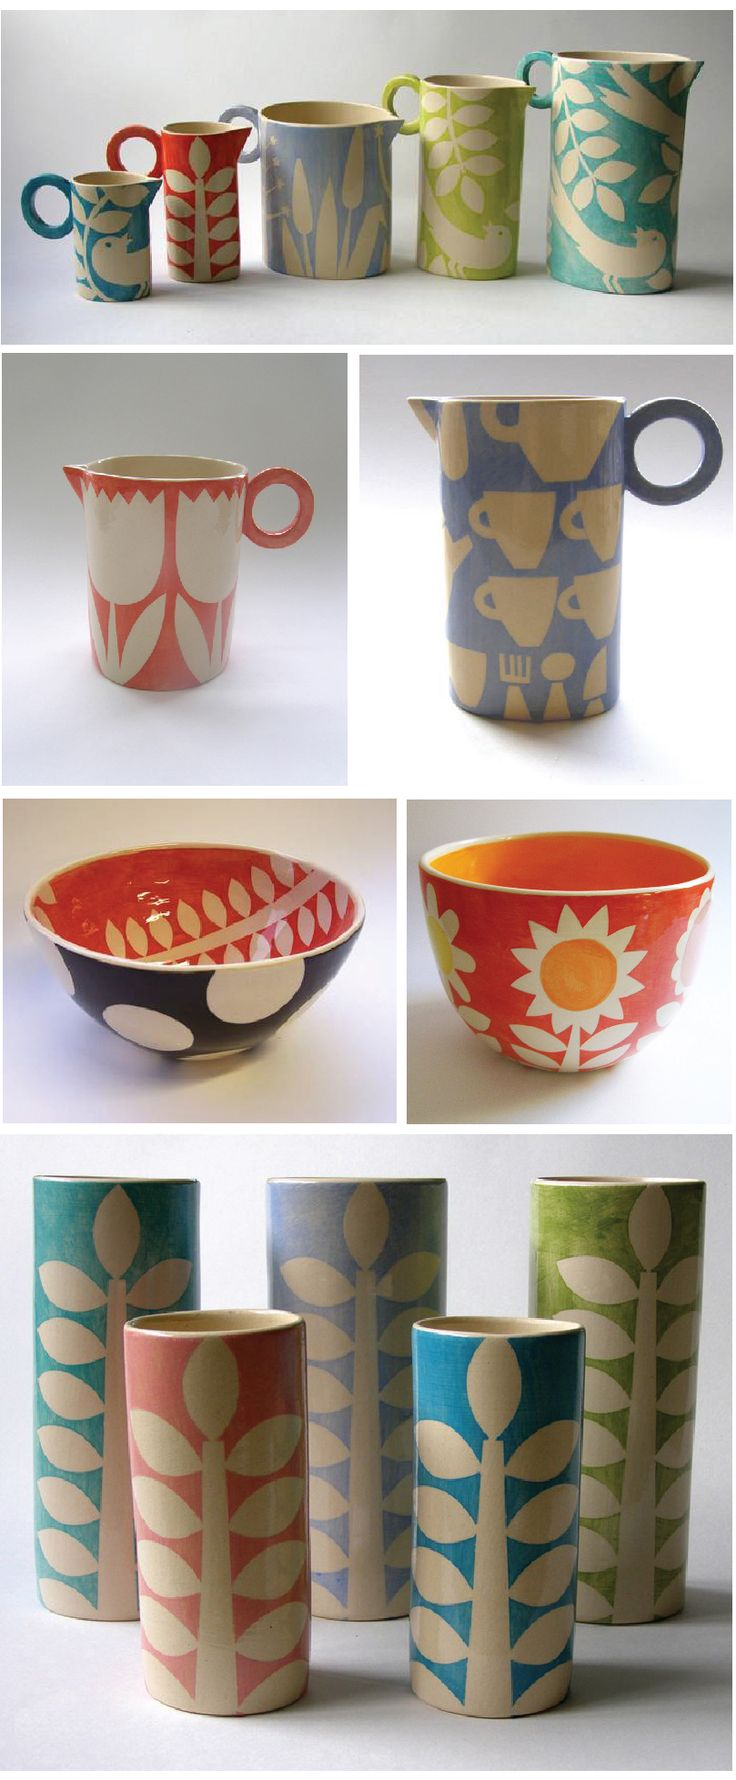 Ceramic pieces of Brighton-based artist, Ken Eardley. He has taken his background as textile designer and applied his knowledge and ideas into this bold and colorful collection of ceramics. You can see his portfolio here at Yellow House Art.    Images: Courtesy of Ken Eardley and Yellow House Art.